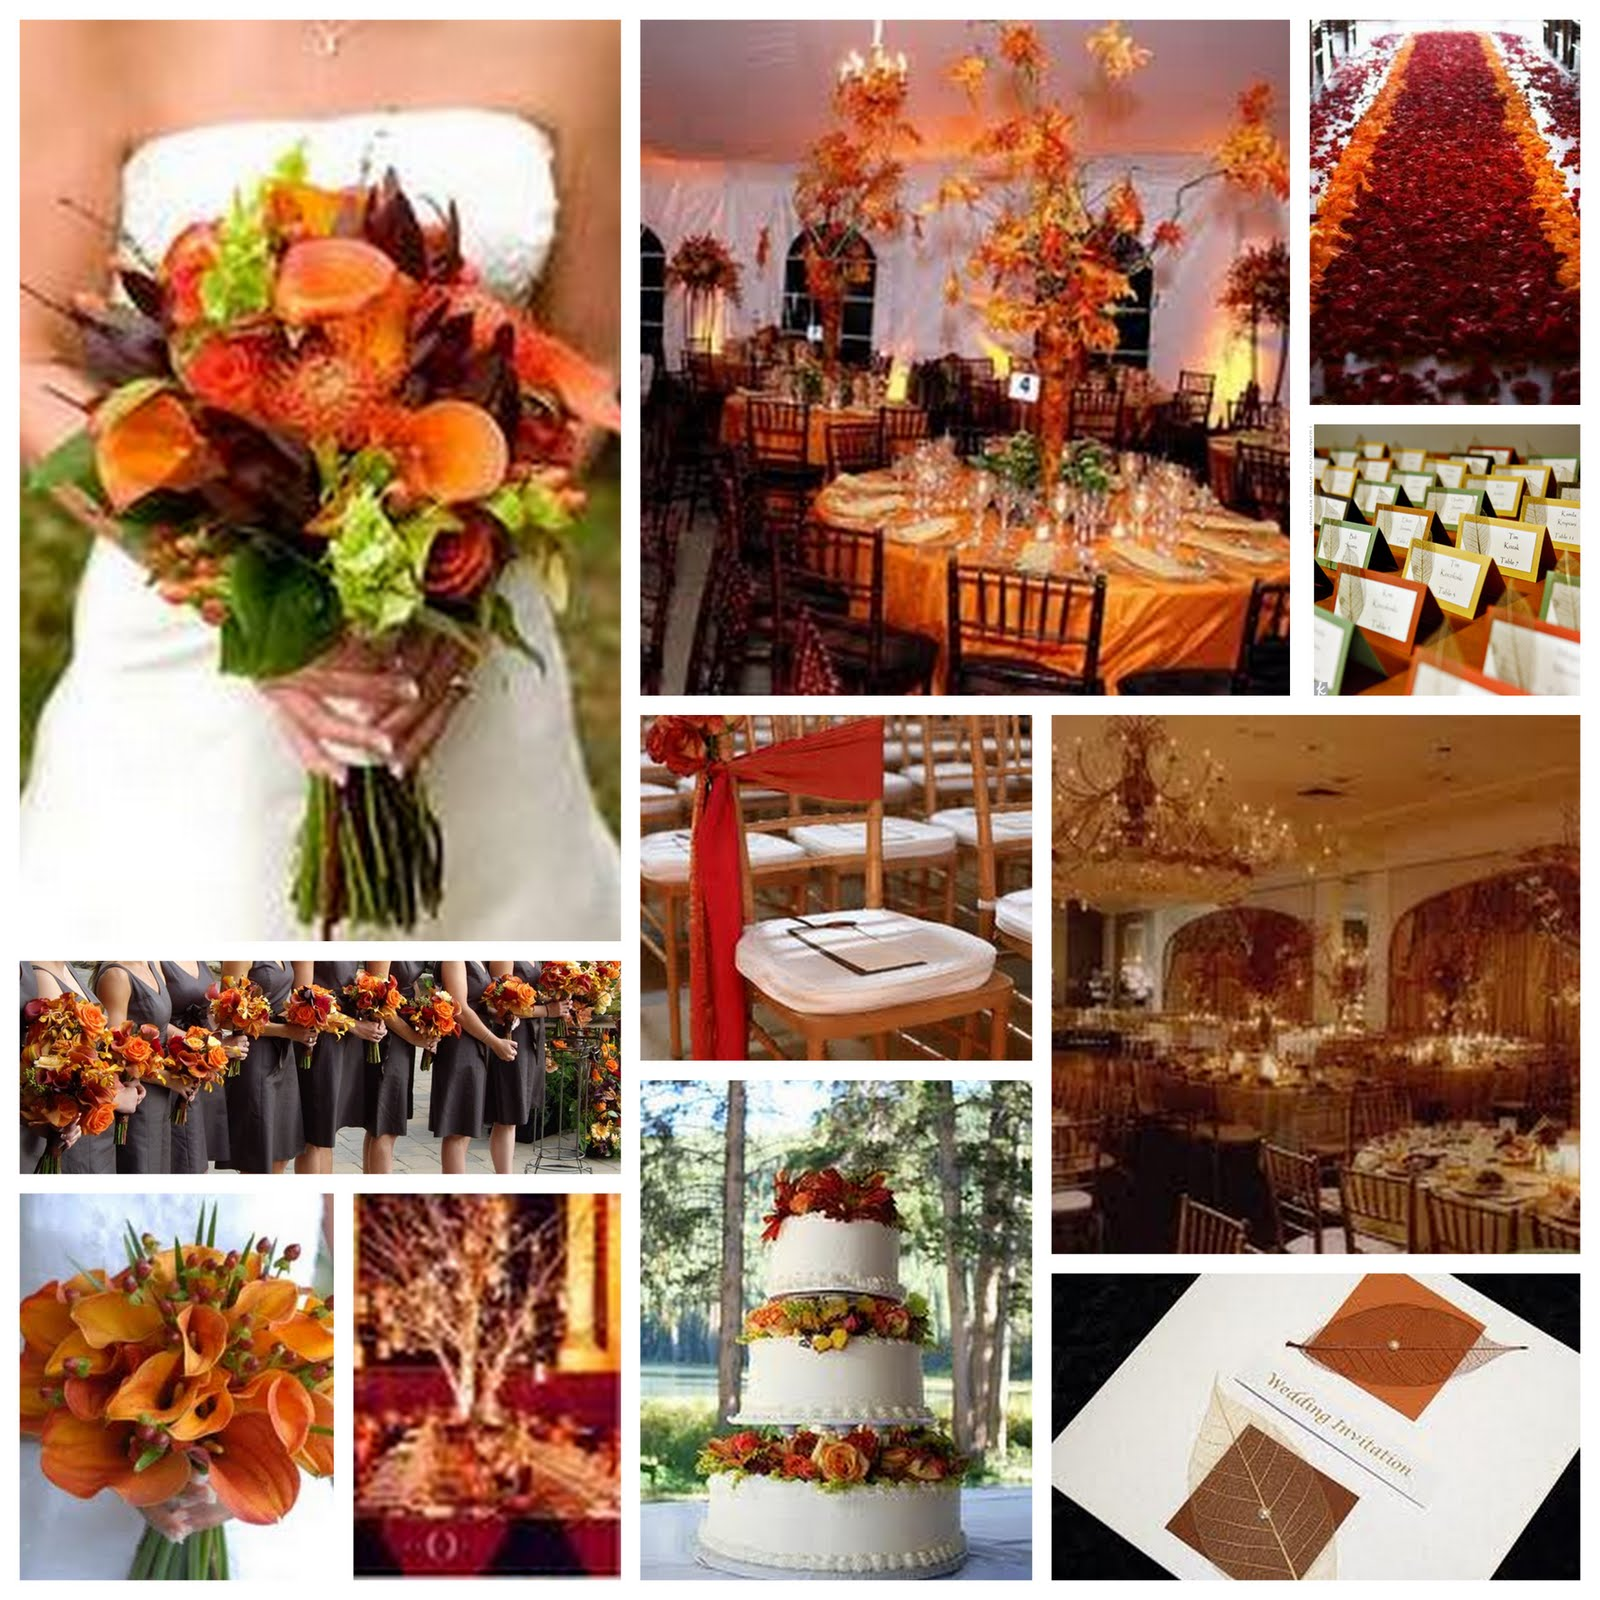 Wedding ideas for fall wedding plan ideas for Autumn wedding decoration ideas